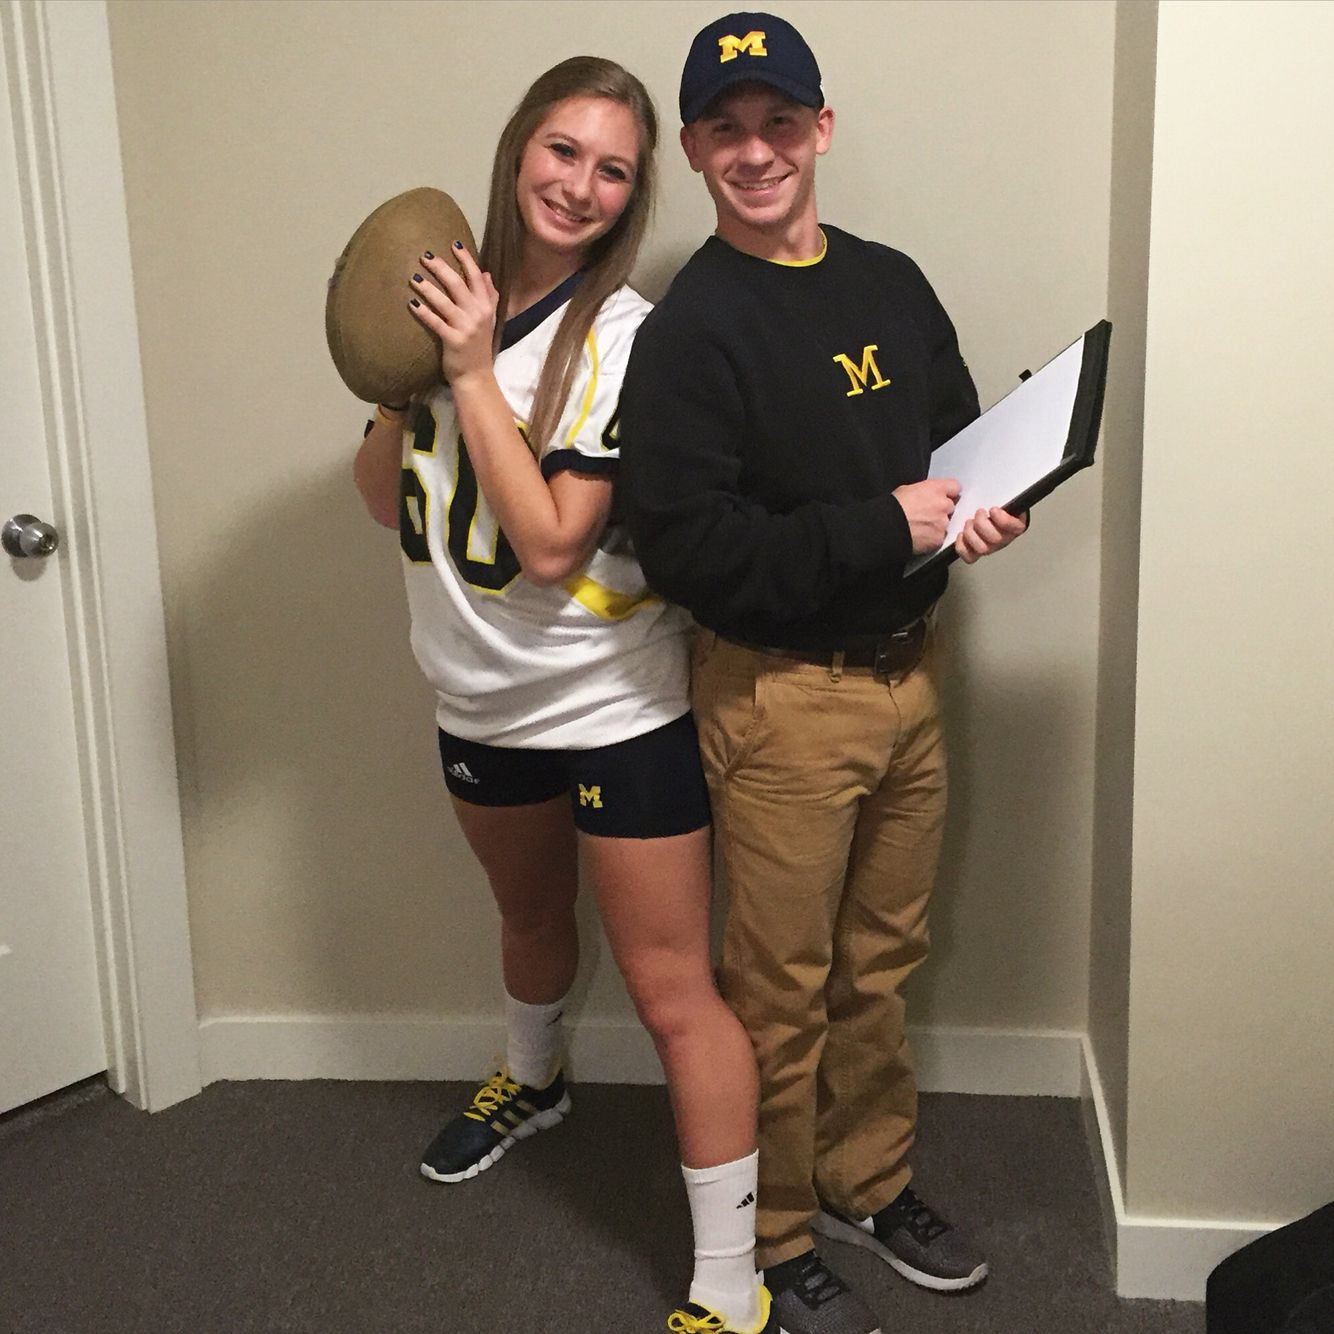 Couple Halloween costume- Michigan football player and Jim Harbaugh  sc 1 st  Pinterest & Couple Halloween costume- Michigan football player and Jim Harbaugh ...